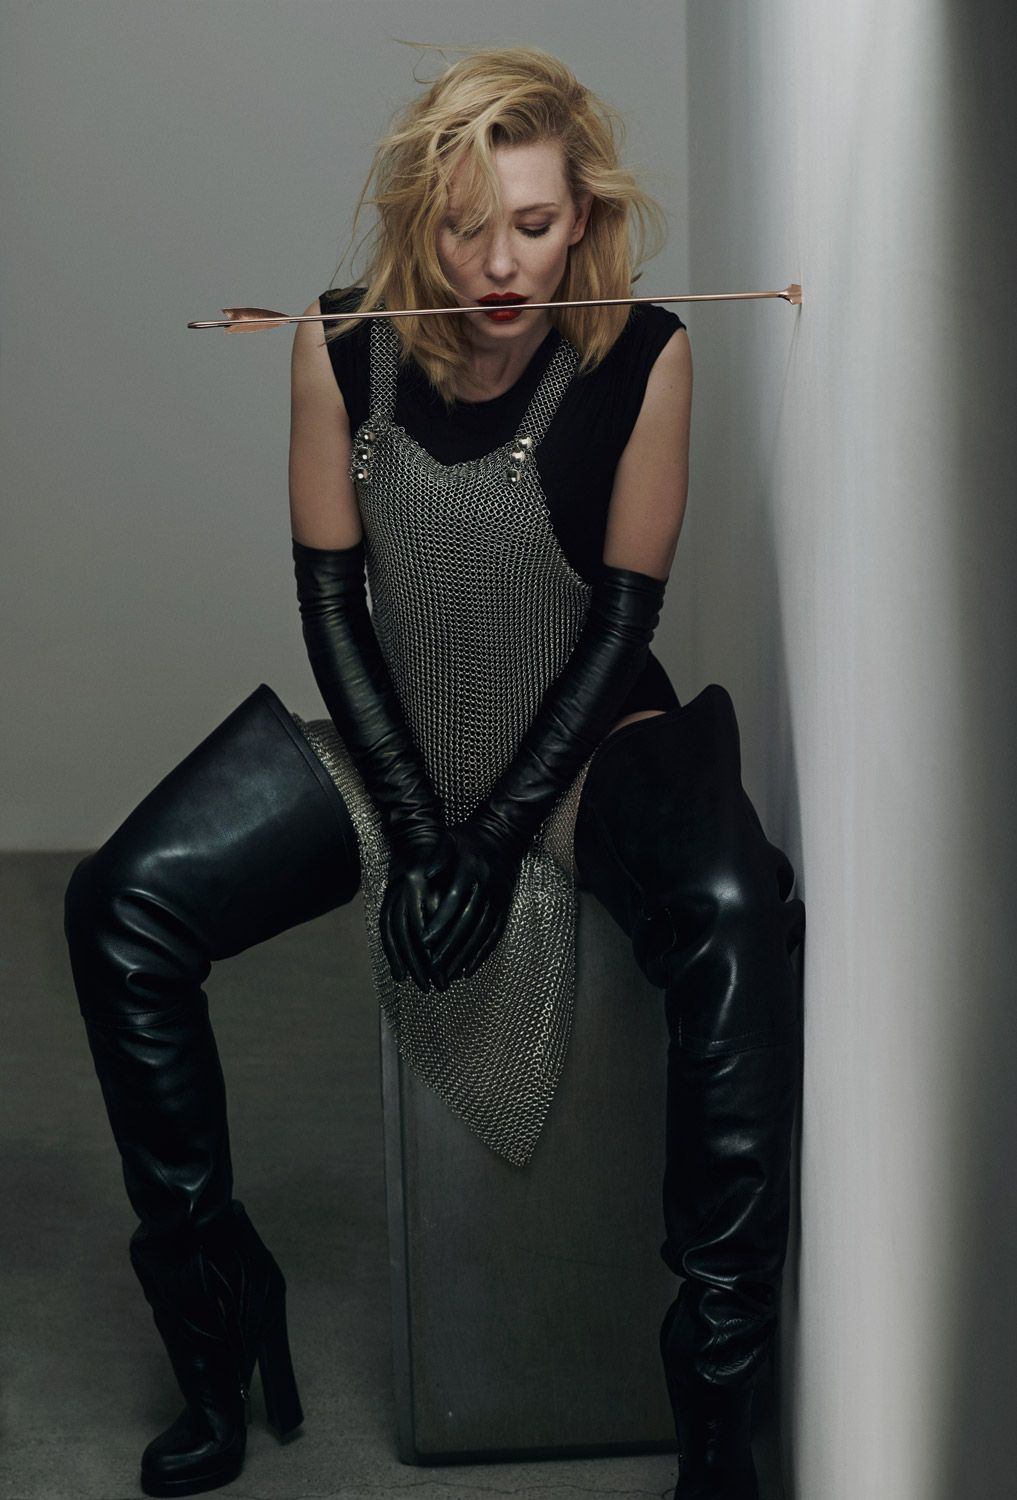 Vintage ladies leather opera gloves - Cate Blanchett Doing Her The Dangers Of Bows Public Service Announcement In Leather Opera